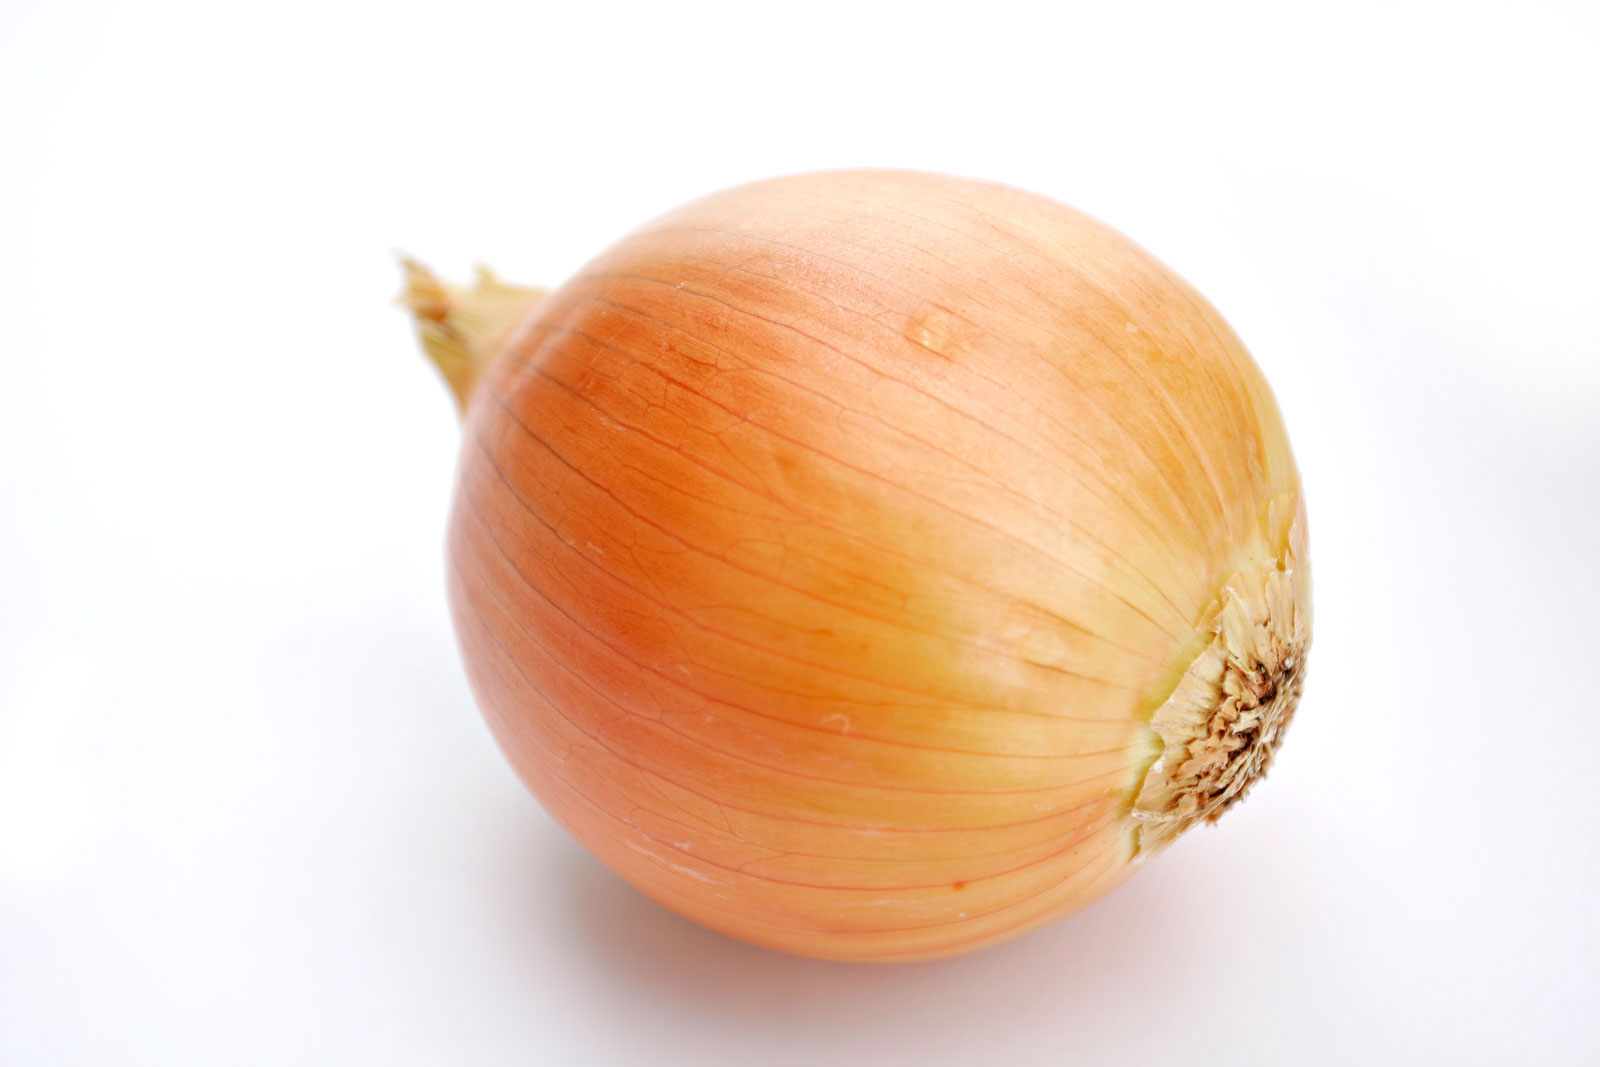 File:Onion white background.jpg - Wikipedia